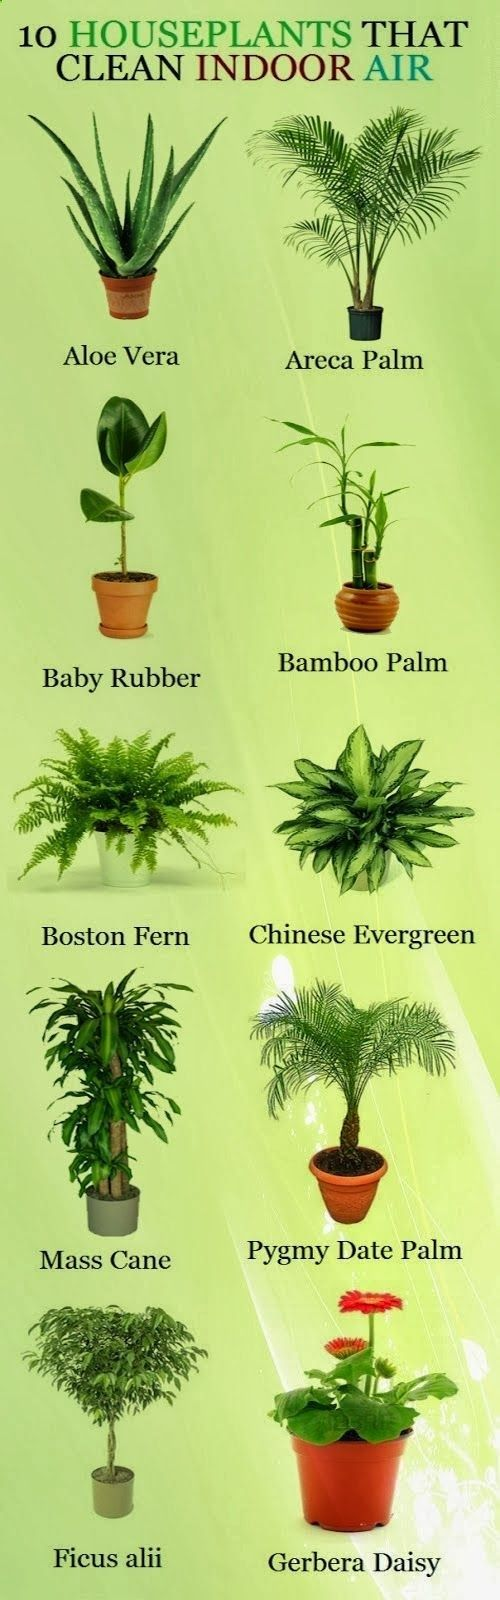 images about gardening on pinterest growing plants planters